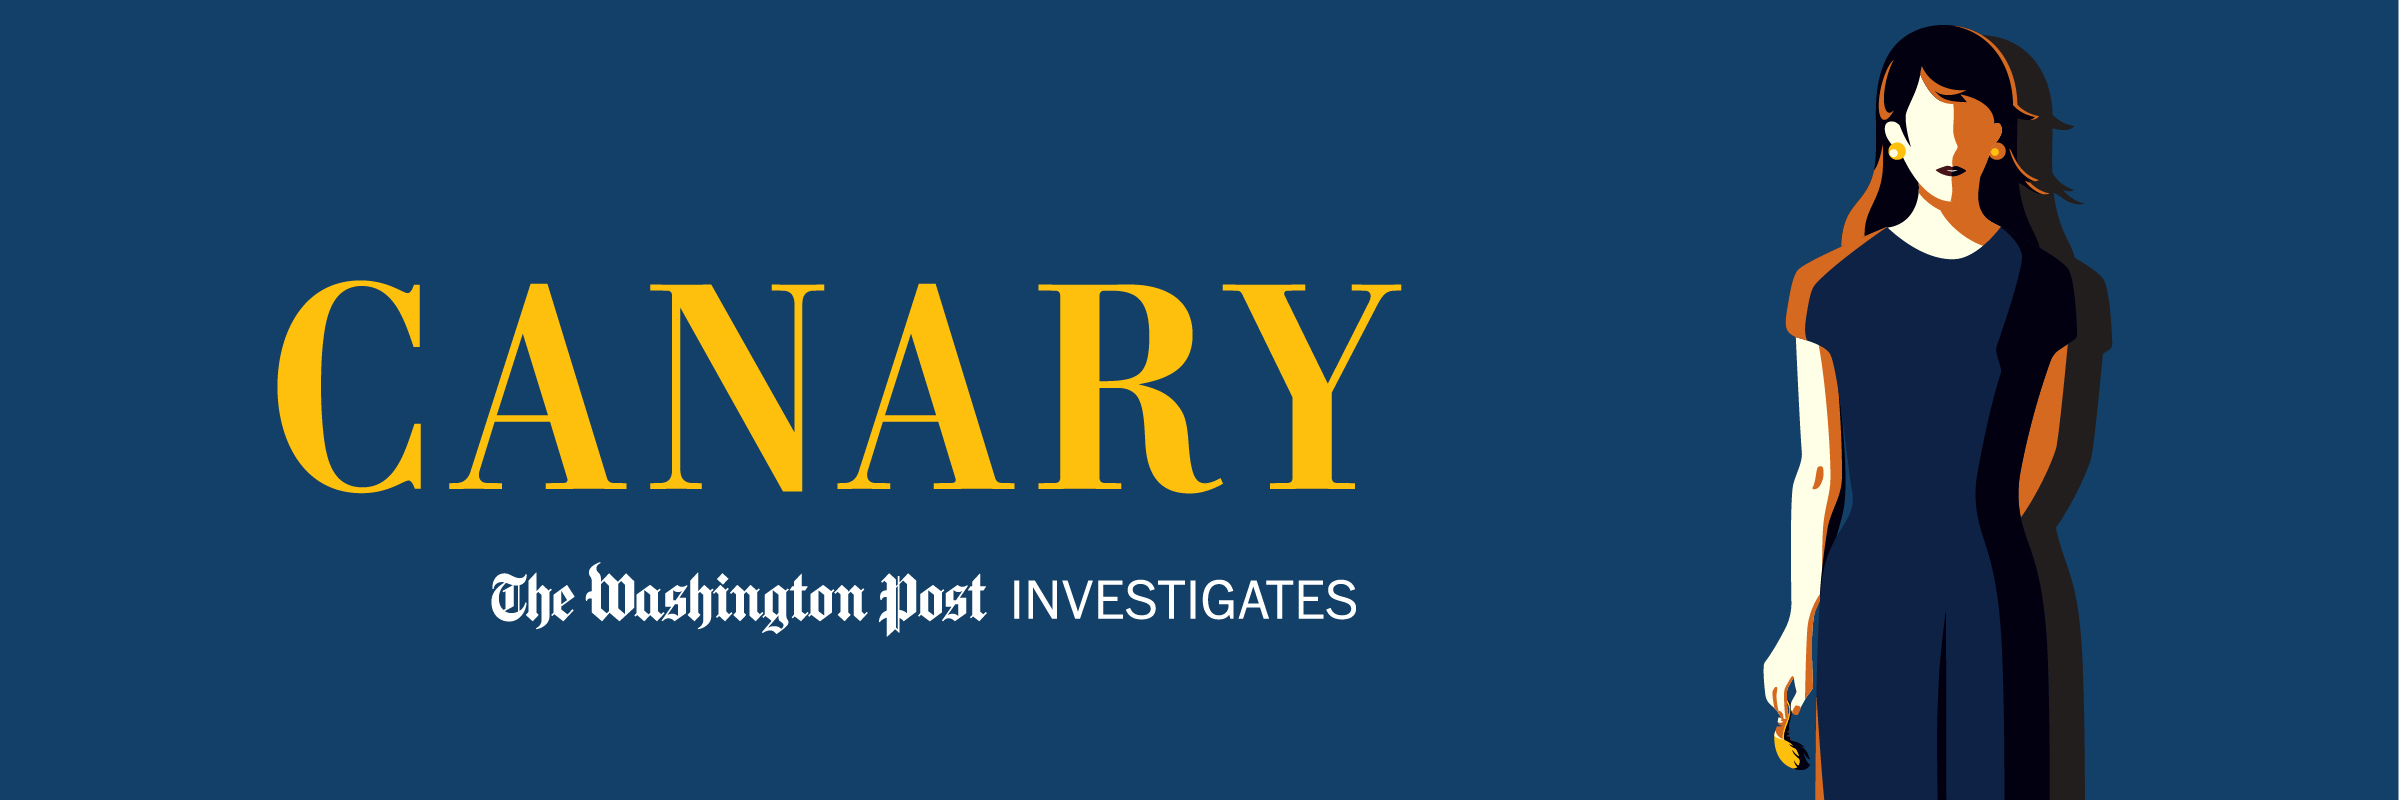 Canary: The Washington Post Investigates Series Cover Image